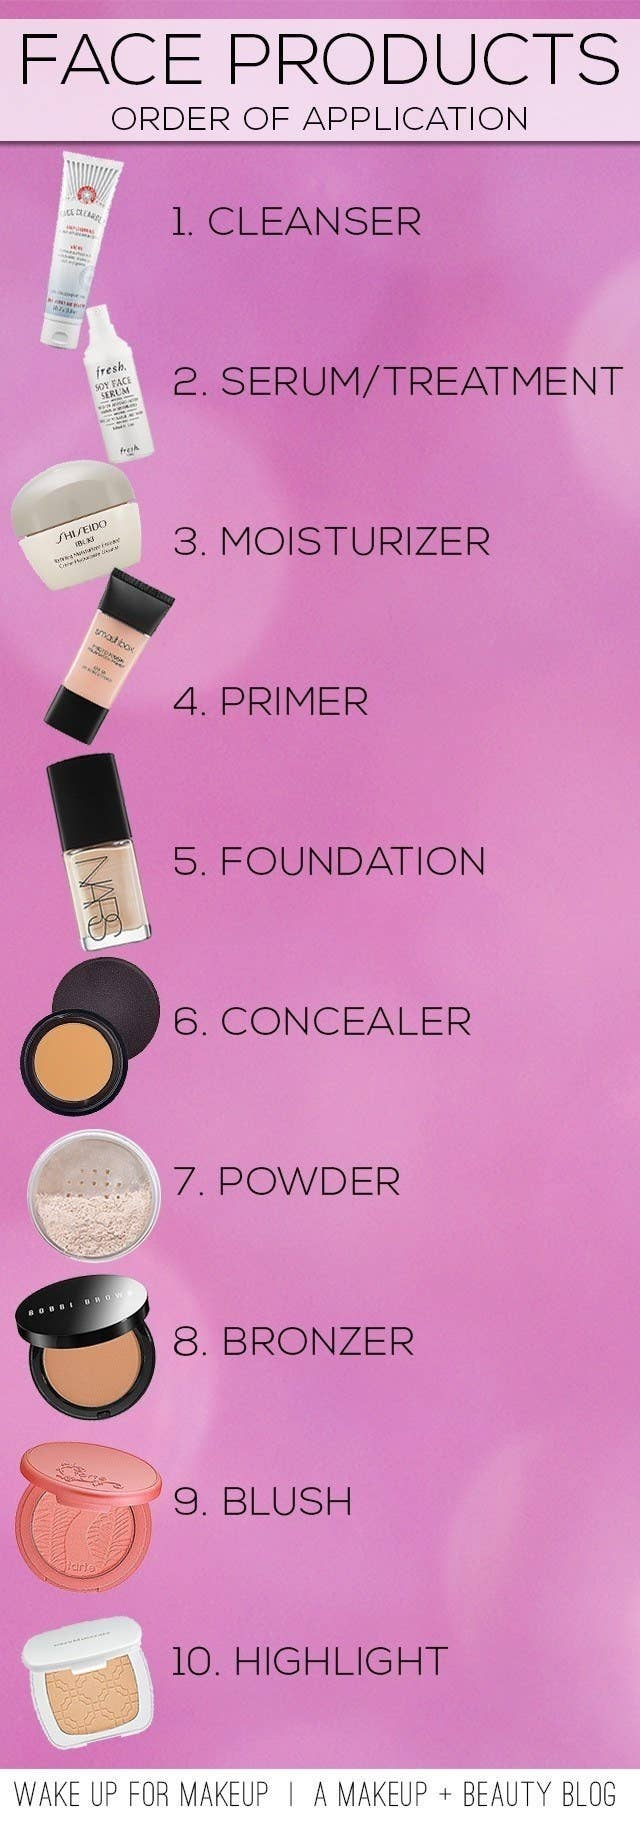 8 Tips And Tricks For Getting Your Makeup To Look The Best It